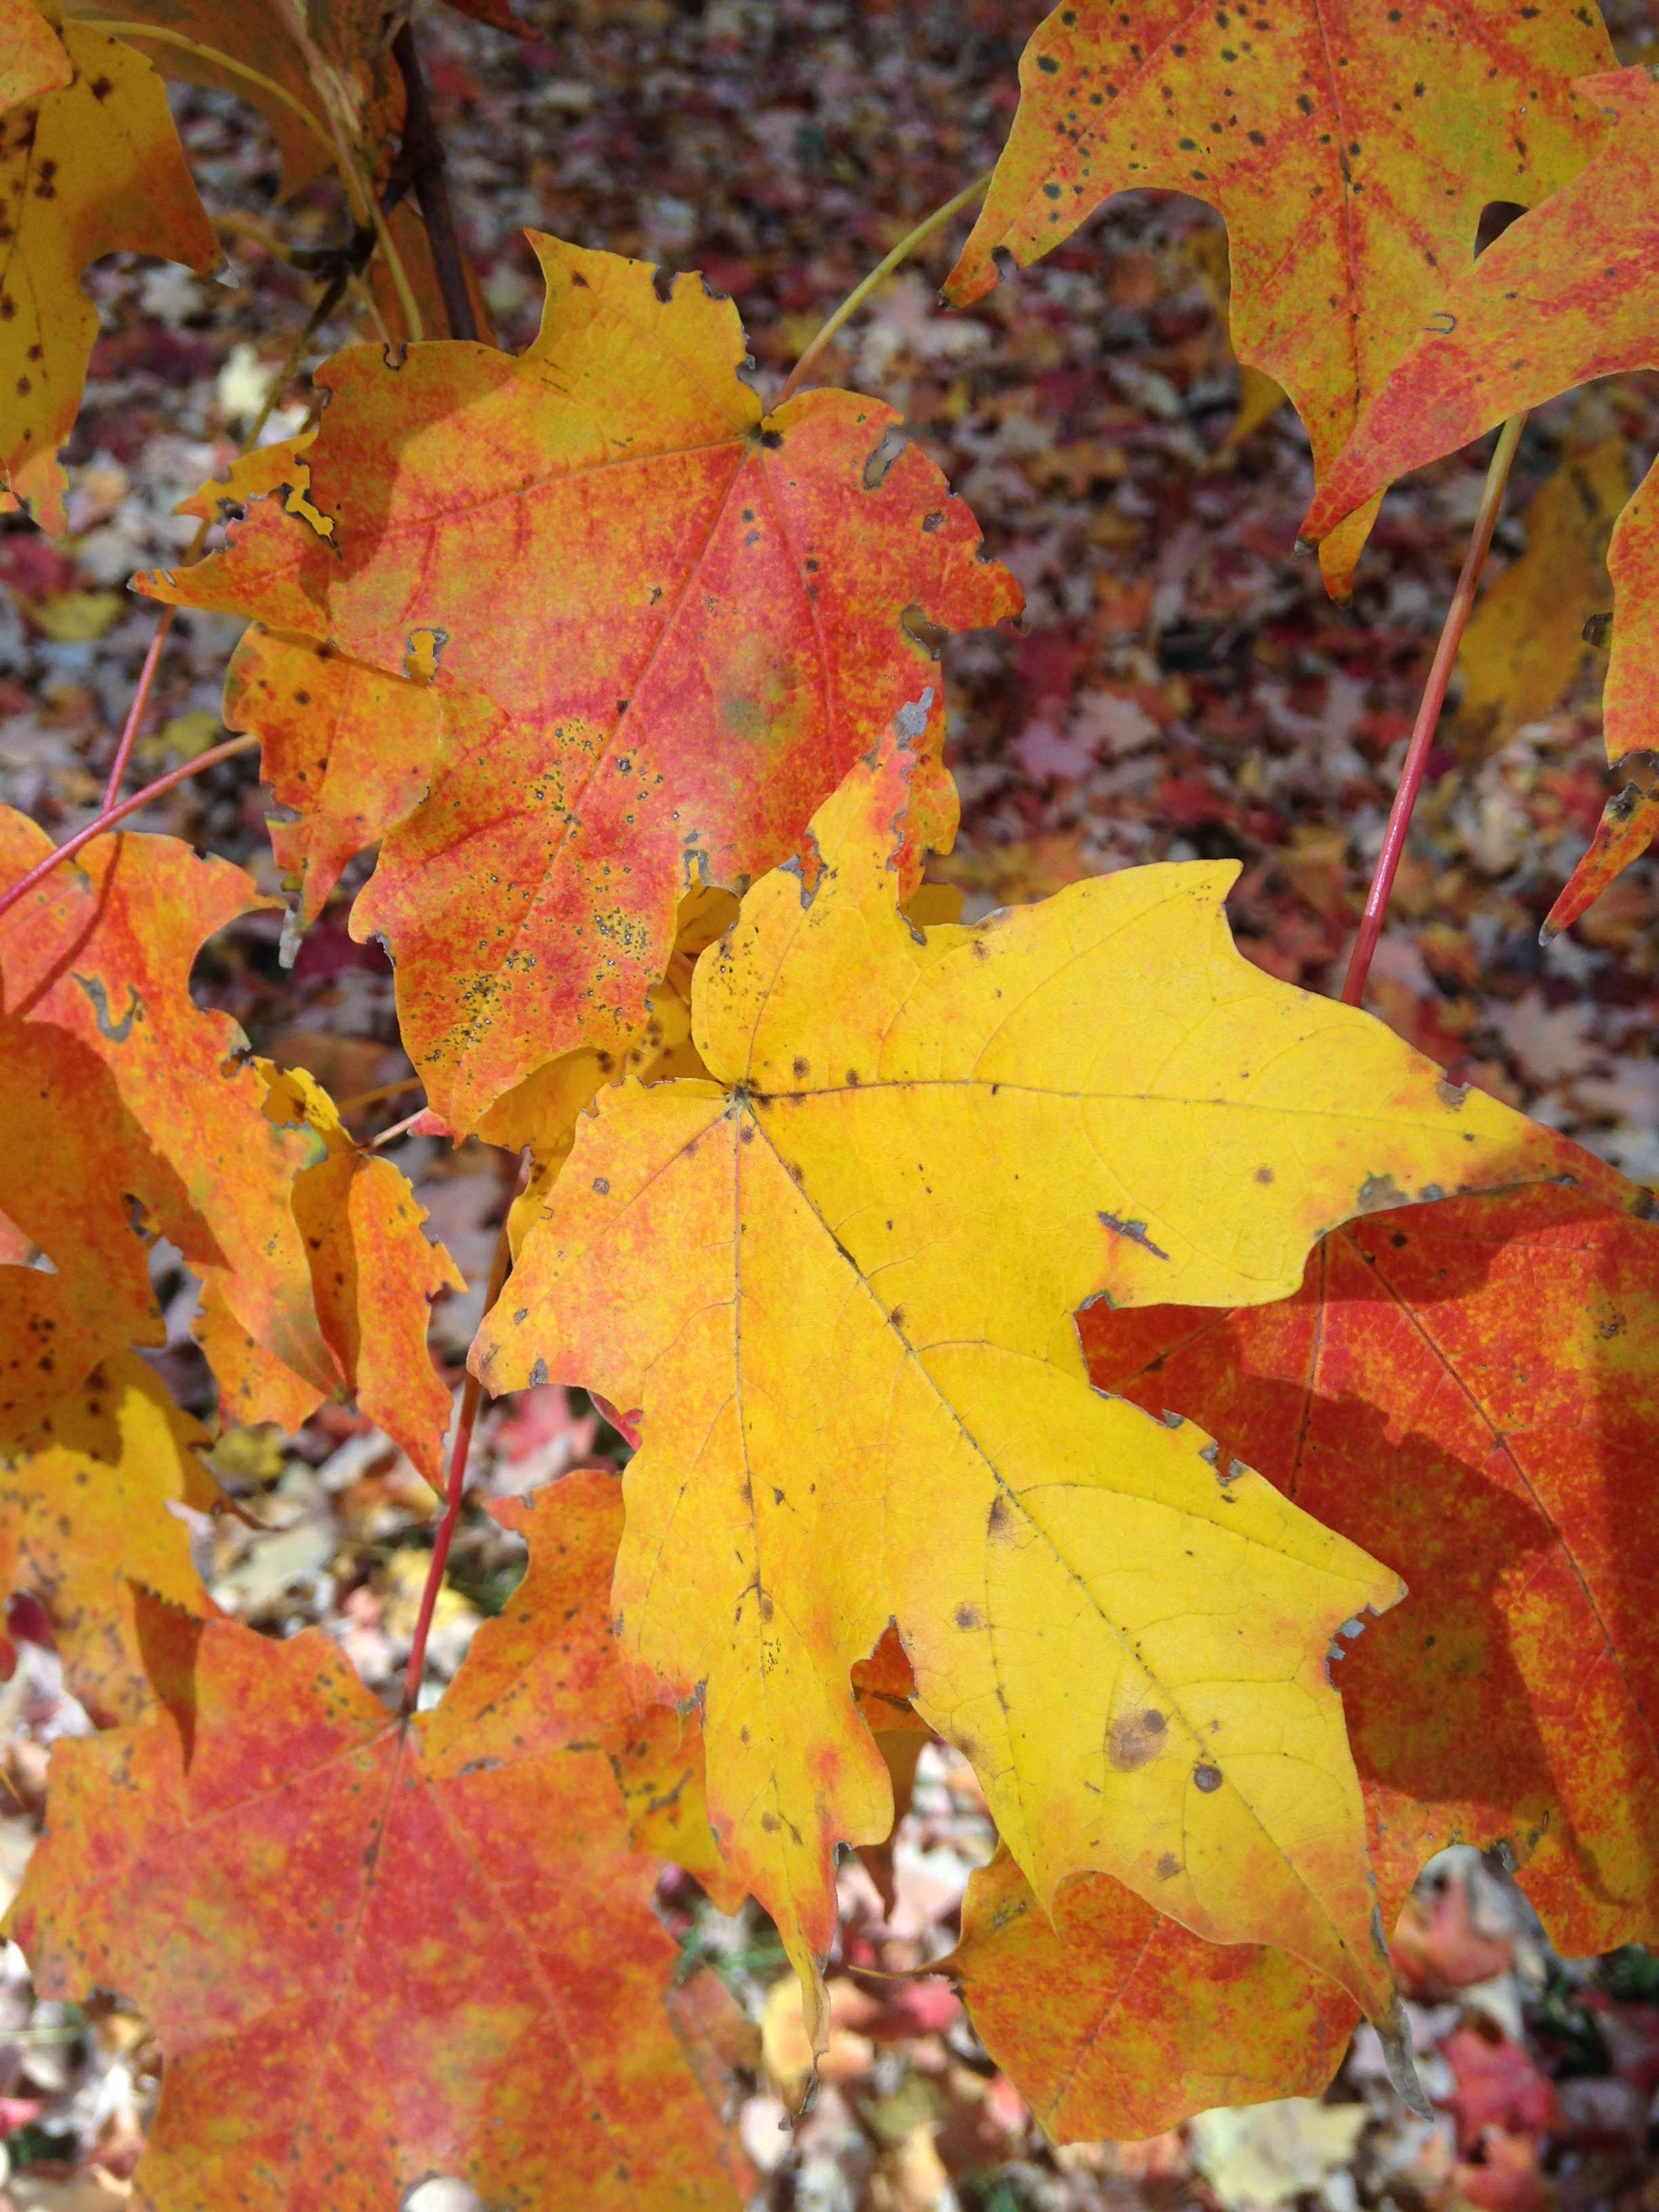 Maples often have great fall color Photo by Maria Gulley